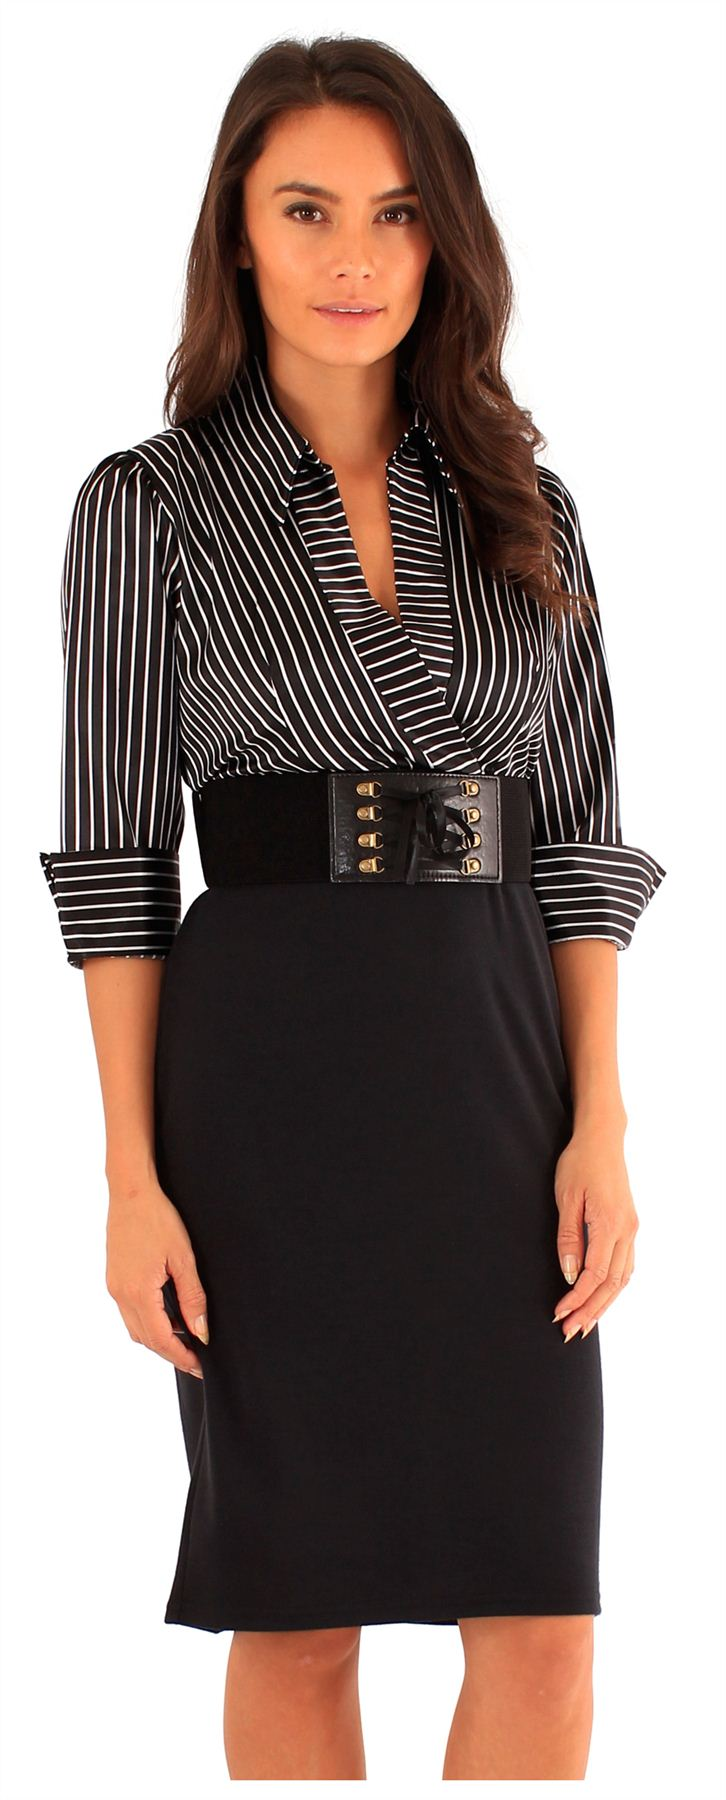 6bd5616f972 New Ladies Pin Stripe Wrap Shirt Long Sleeve Belted 2 In 1 Body Con ...